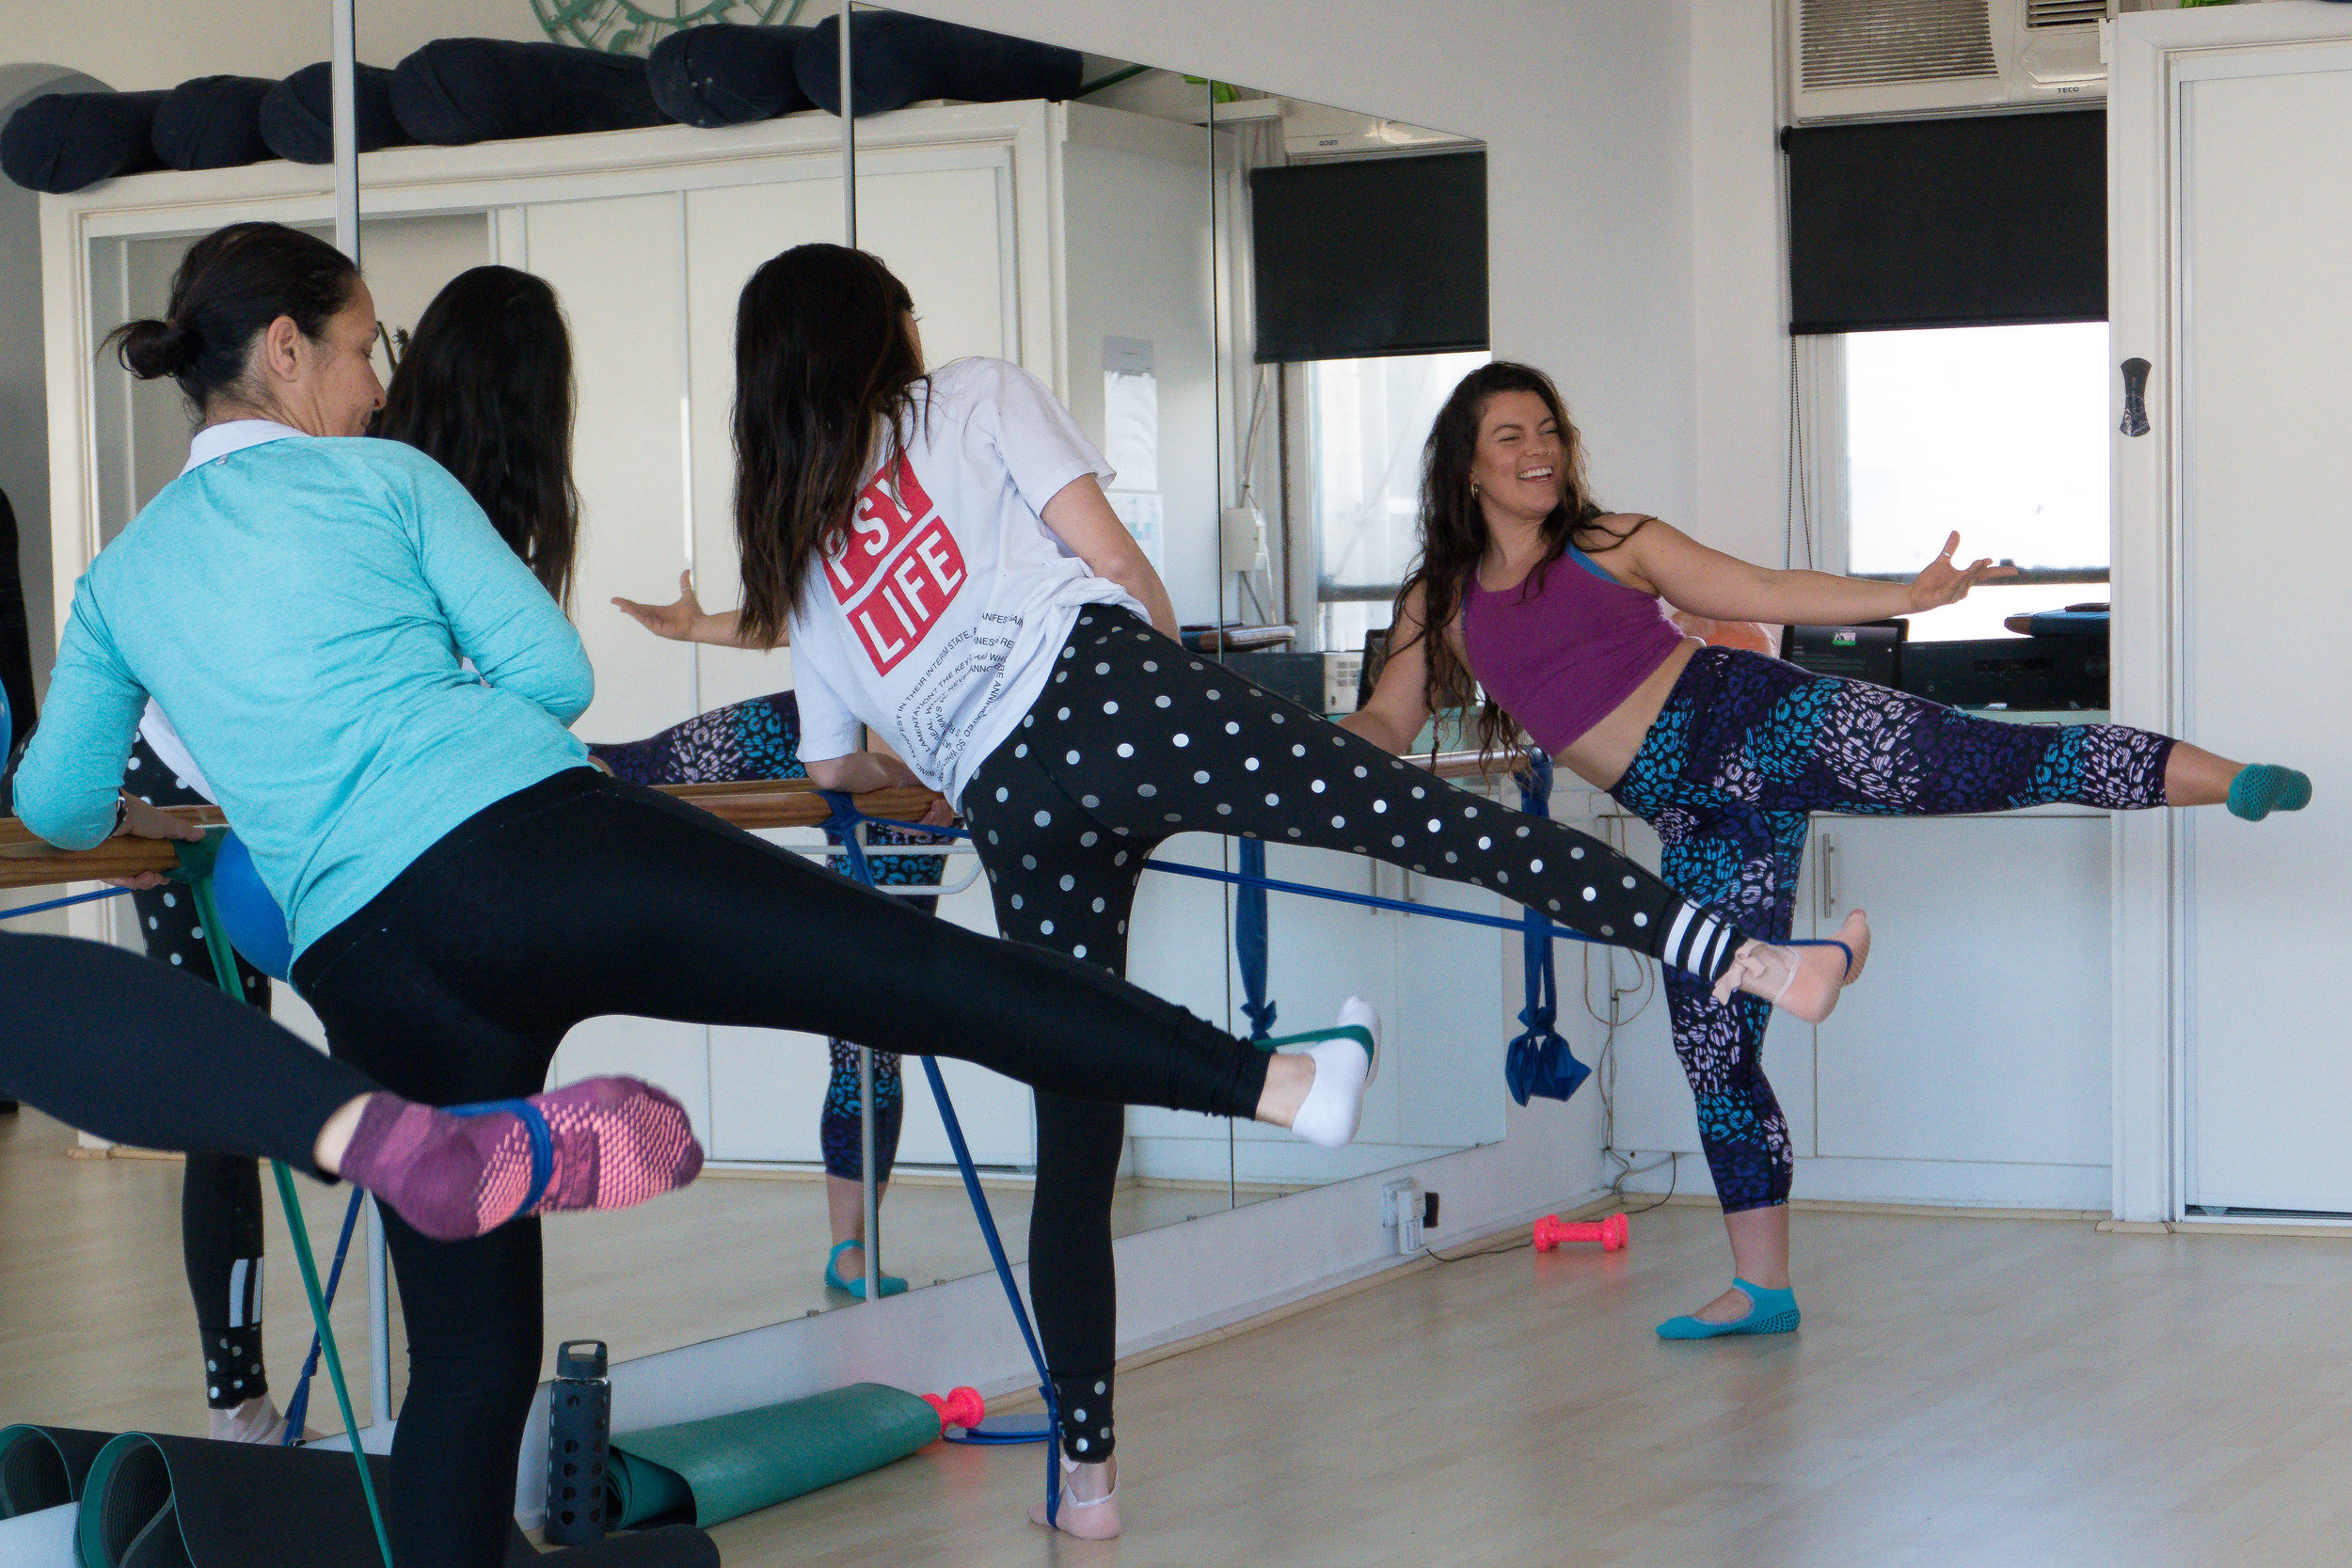 SPECIAL OFFERBarre Bootcamp6 weeks unlimited classes - just $290 - PLENTY OF GOODIES INCLUDED!